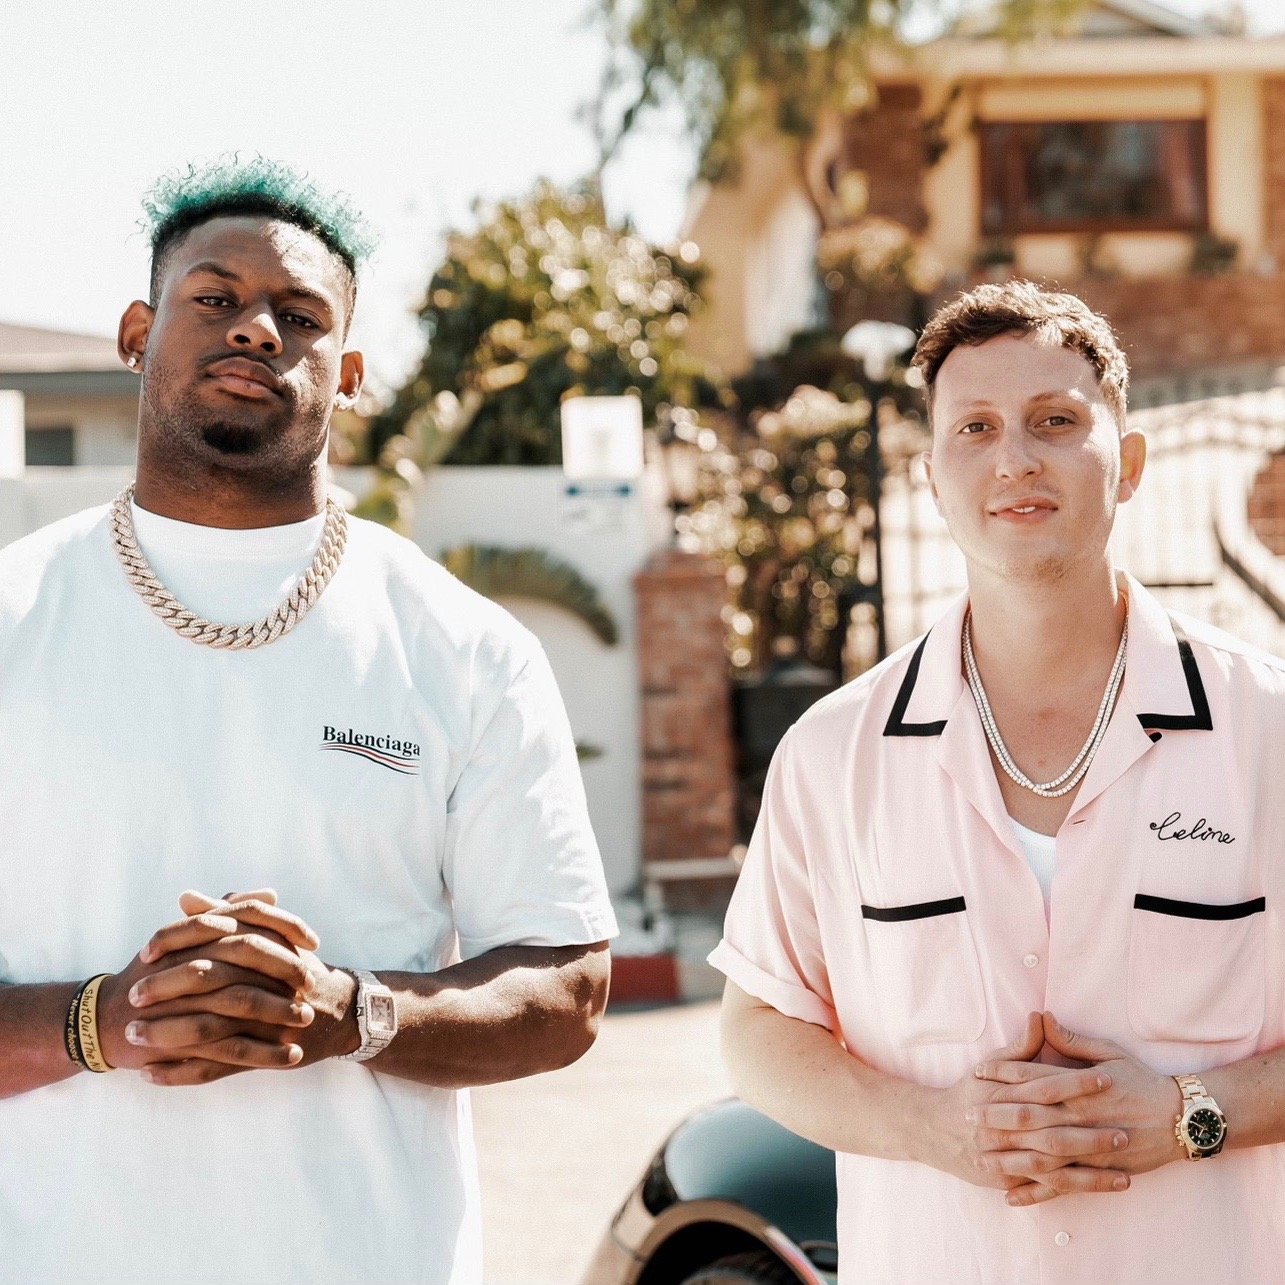 Greg Grillz x JuJu Smith Schuster collab for Grillz.com image via Kyra Breslin at One Fourteen Entertainment for use by 360 Magazine